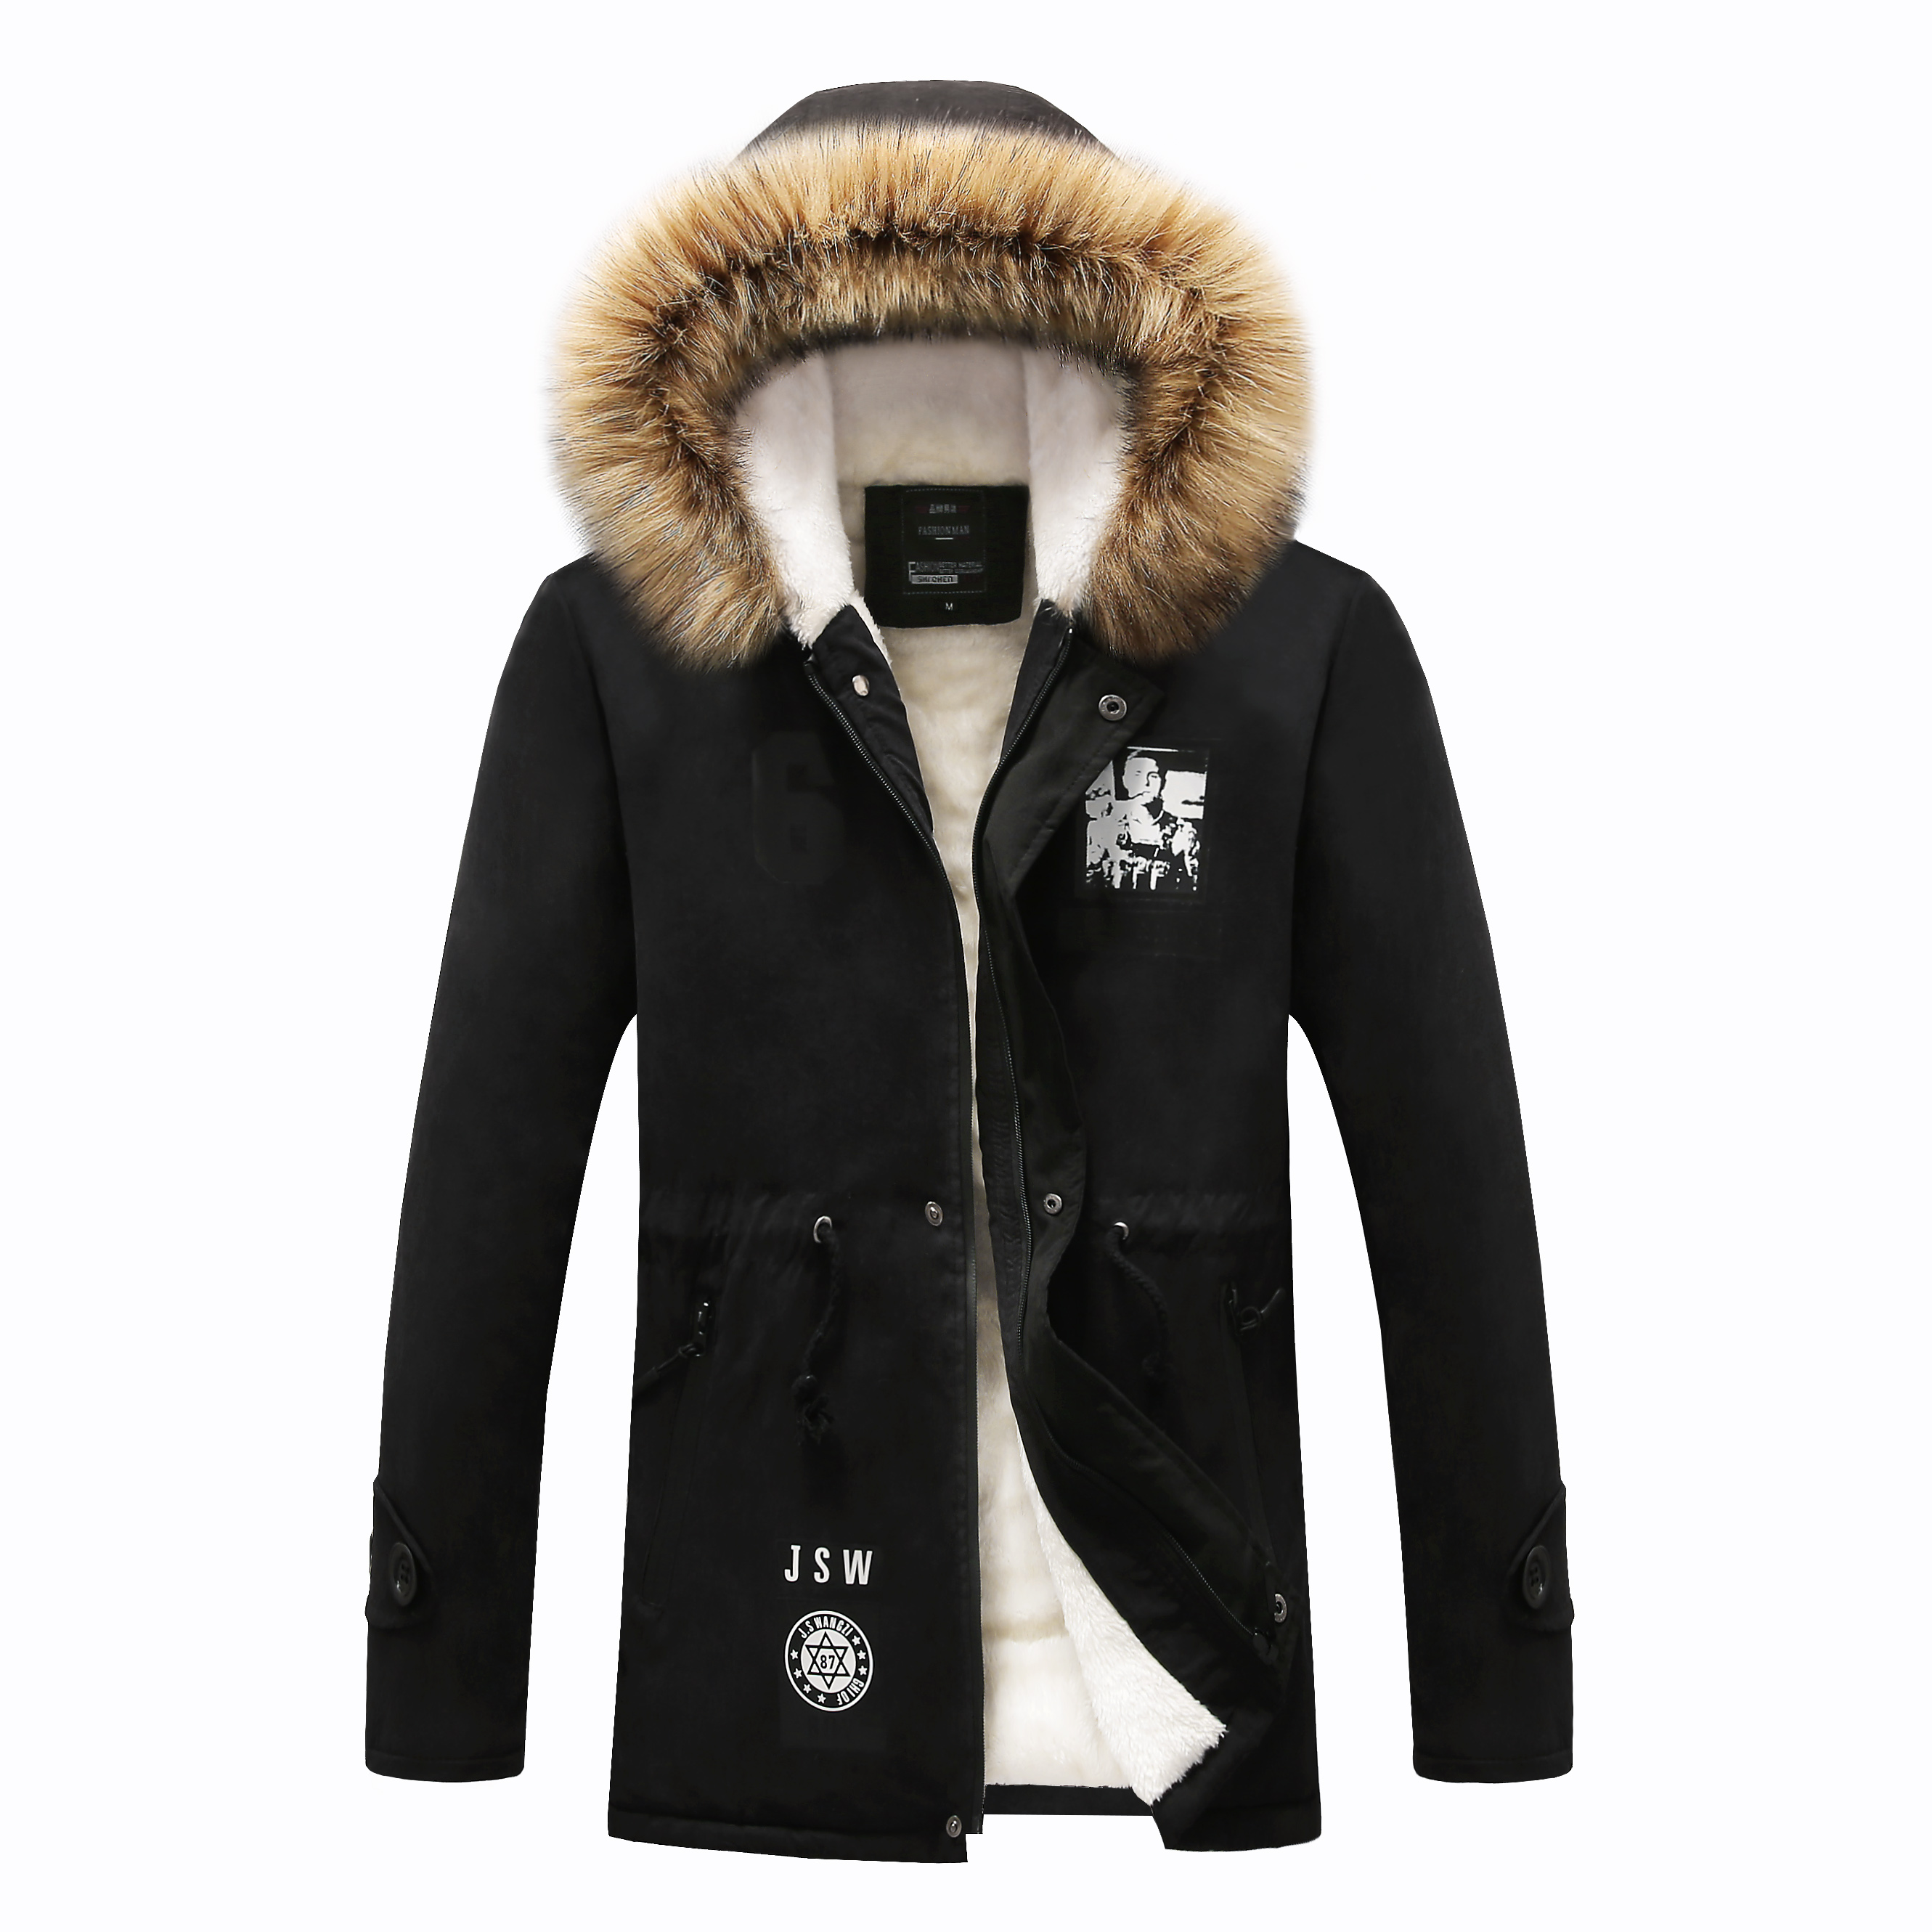 Fashion Fur Liner Jacket Parkas Men 2020 Winter Thick Warm Men's Jacket and Coats Casual Hooded Coat Outwears Lovers Clothing